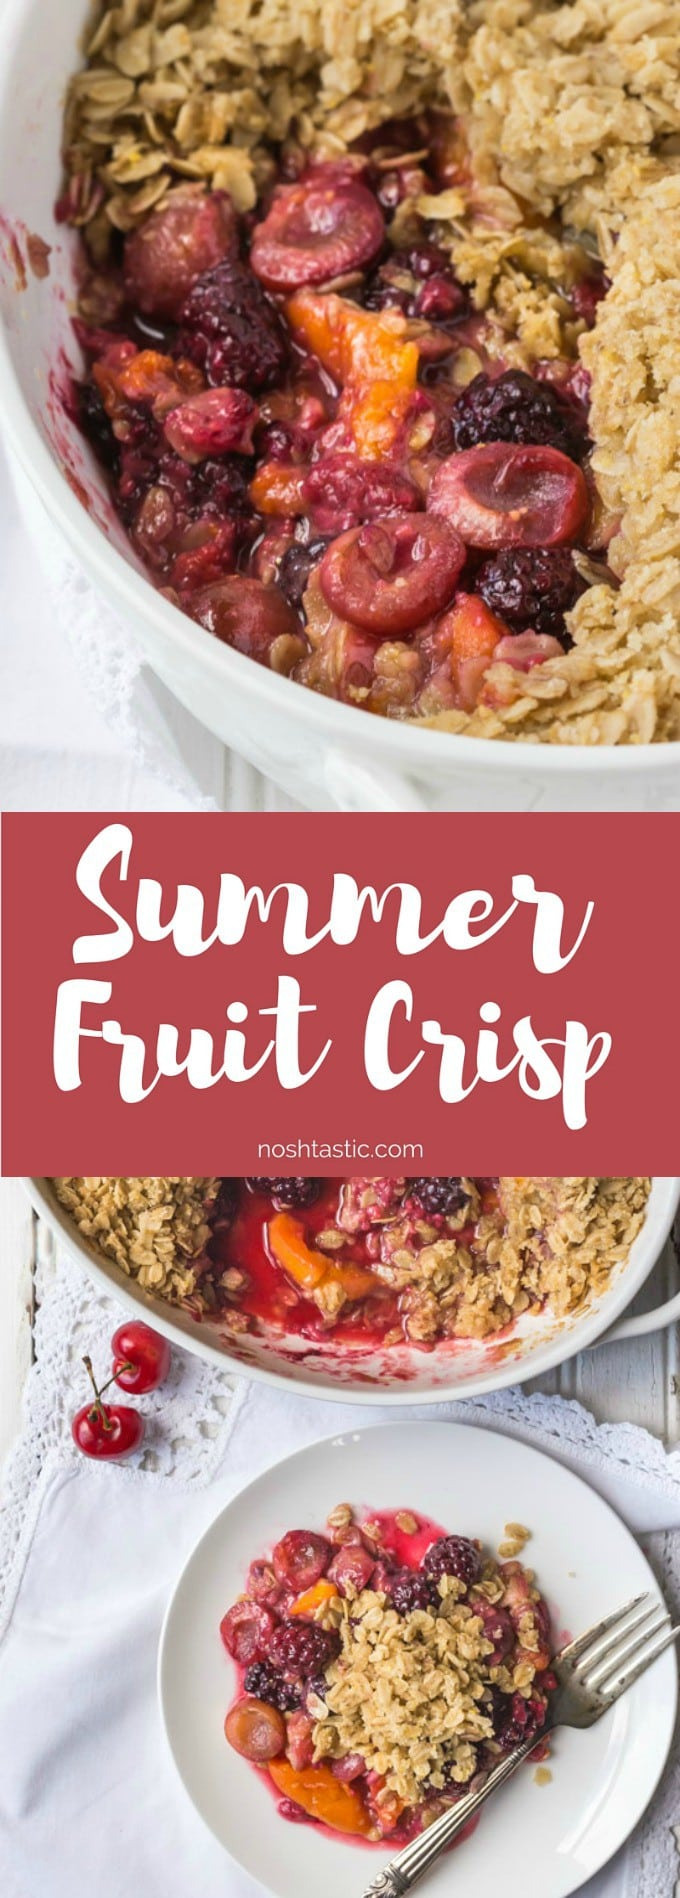 Gluten Free Fruit Crisp is a perfect way to combine seasonal fruits for a really delicious baked dessert that is low enough in sugar per serving it also doubles as a healthy breakfast.This recipe is Vegan.